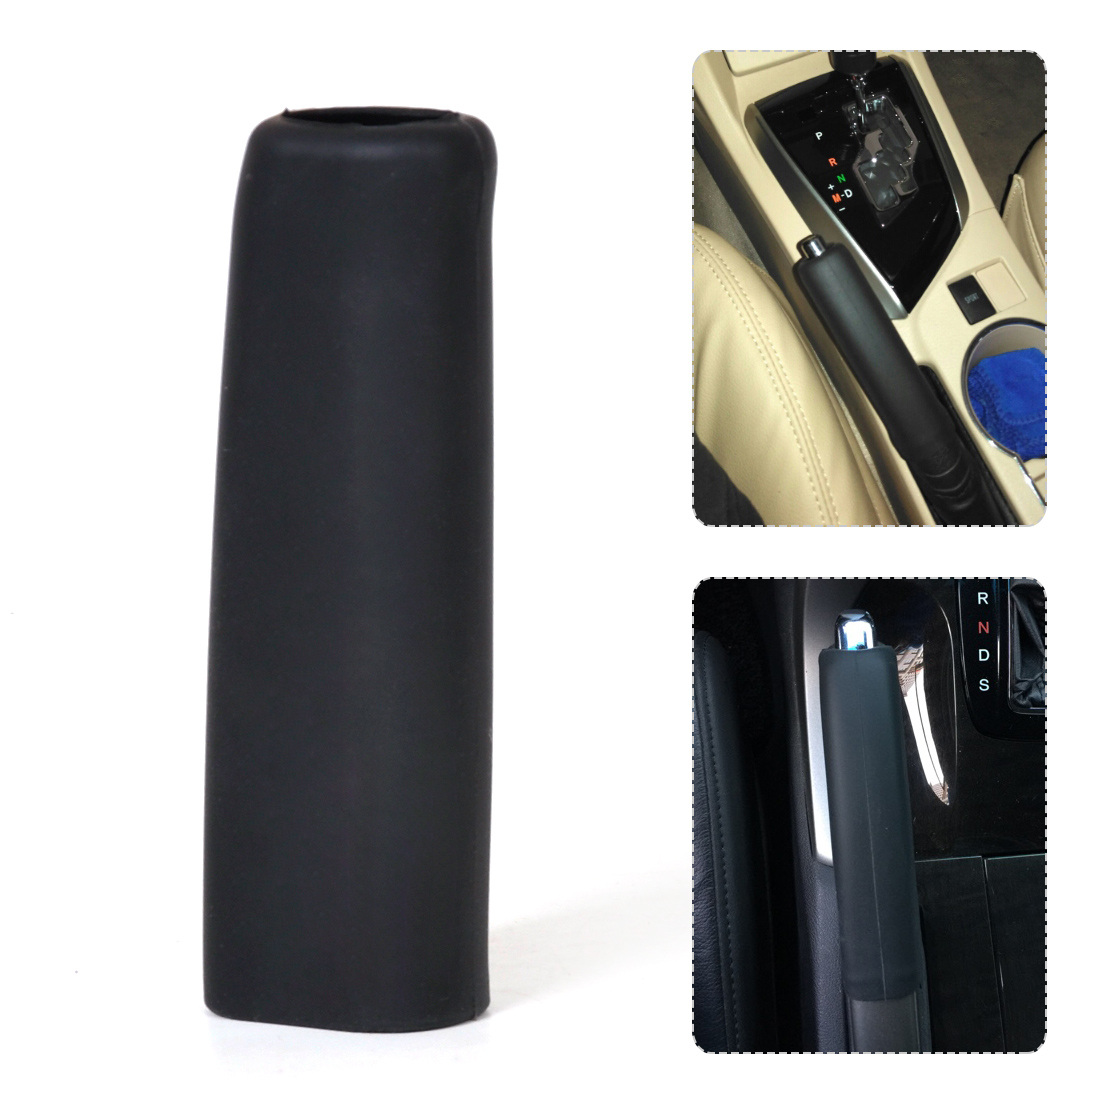 CITALL Car Auto Silicone Gel Anti Slip Parking Hand Brake Cover Case Sleeve Black For VW Golf Beetle Audi A4 A6 BMW X3 X5 X6